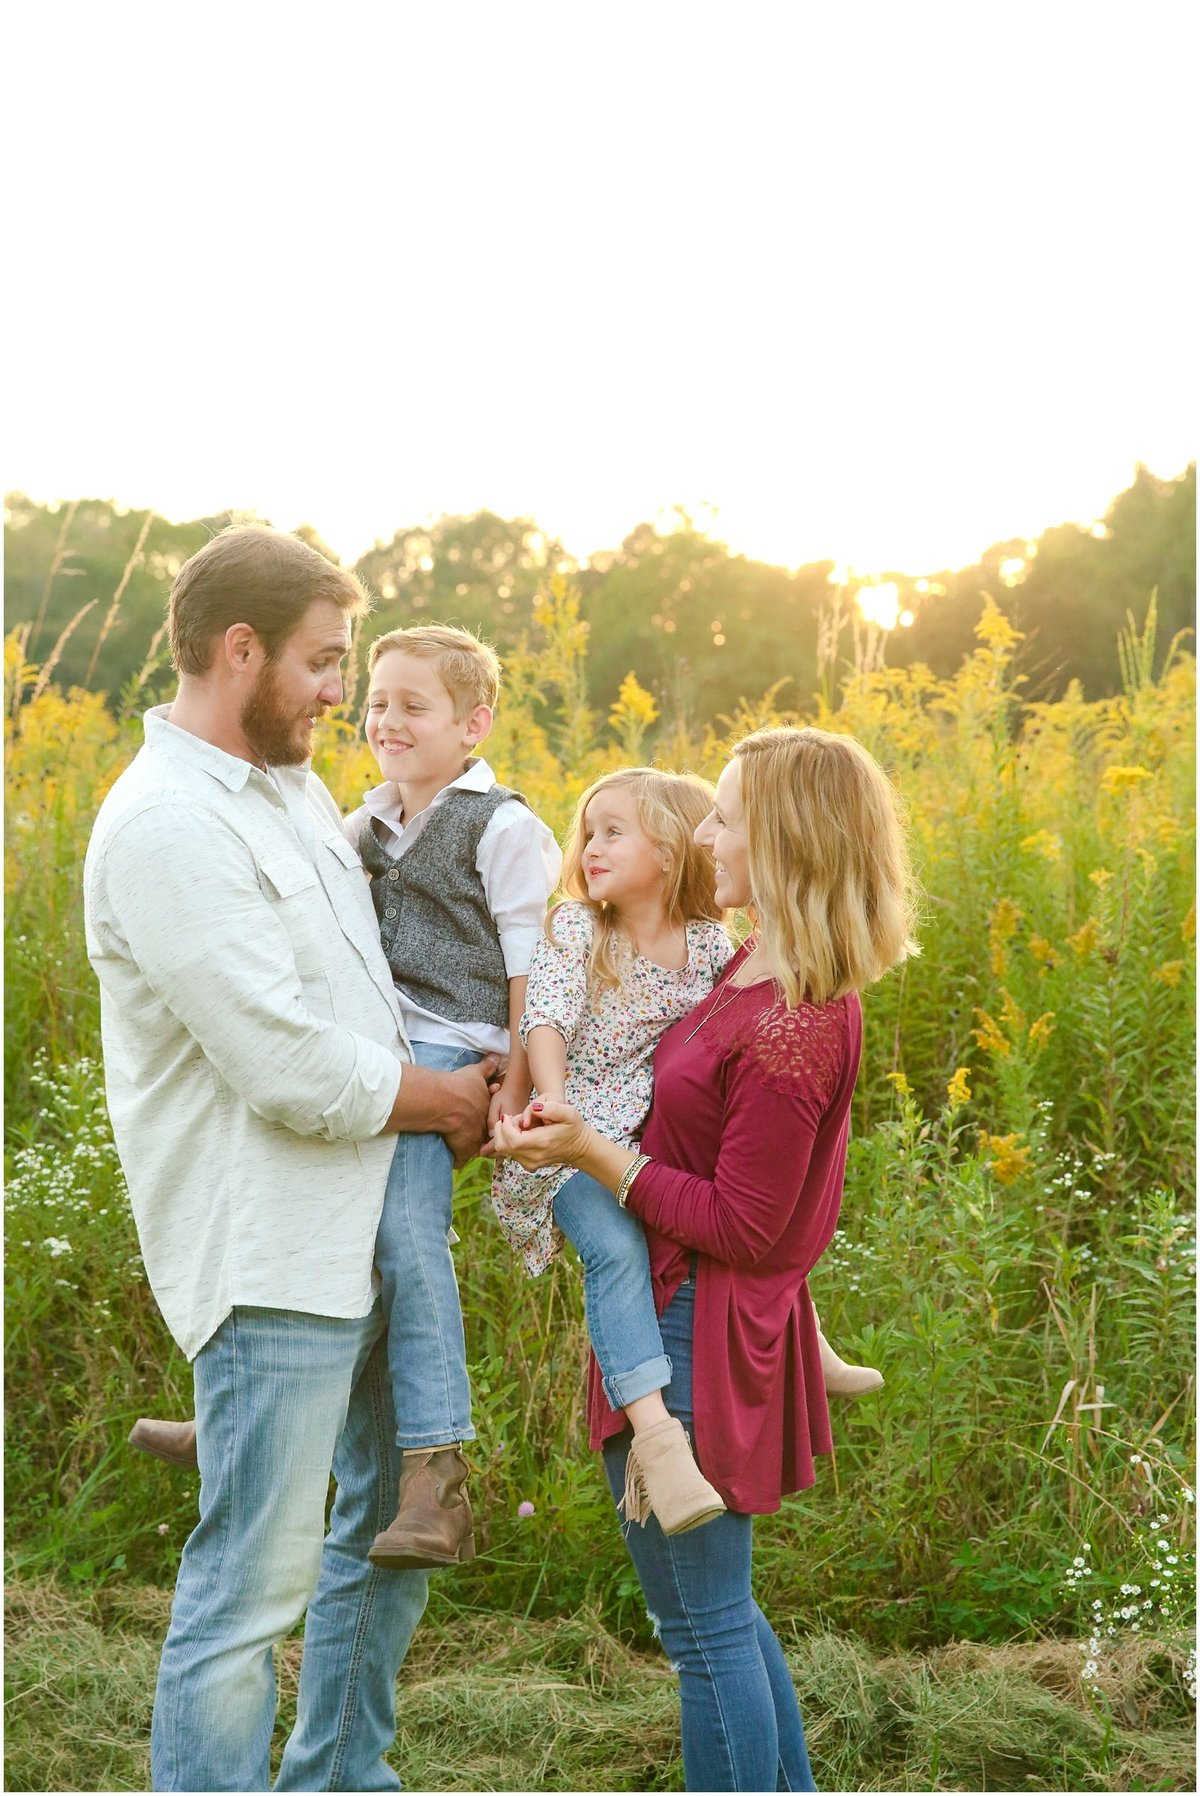 Illinois Portrait Photographer | Macomb, IL | Creative Touch Photography_0441